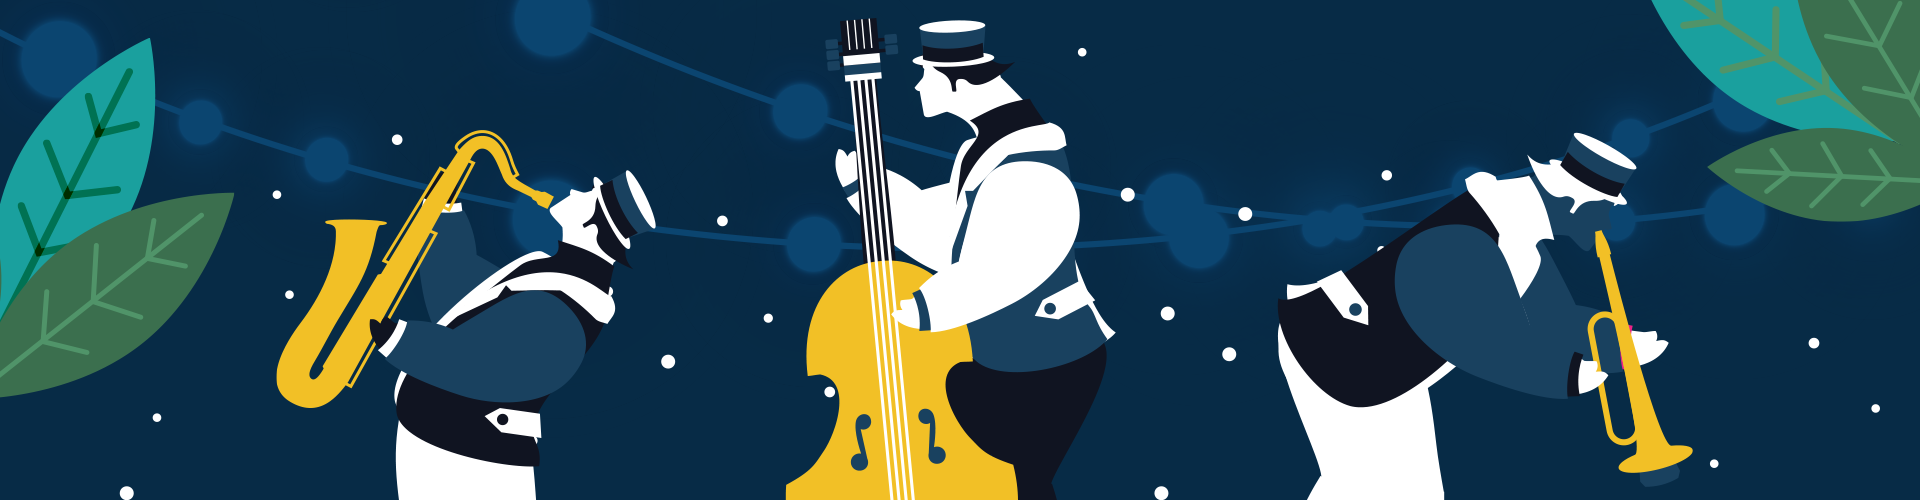 ncal-jazz-in-the-park